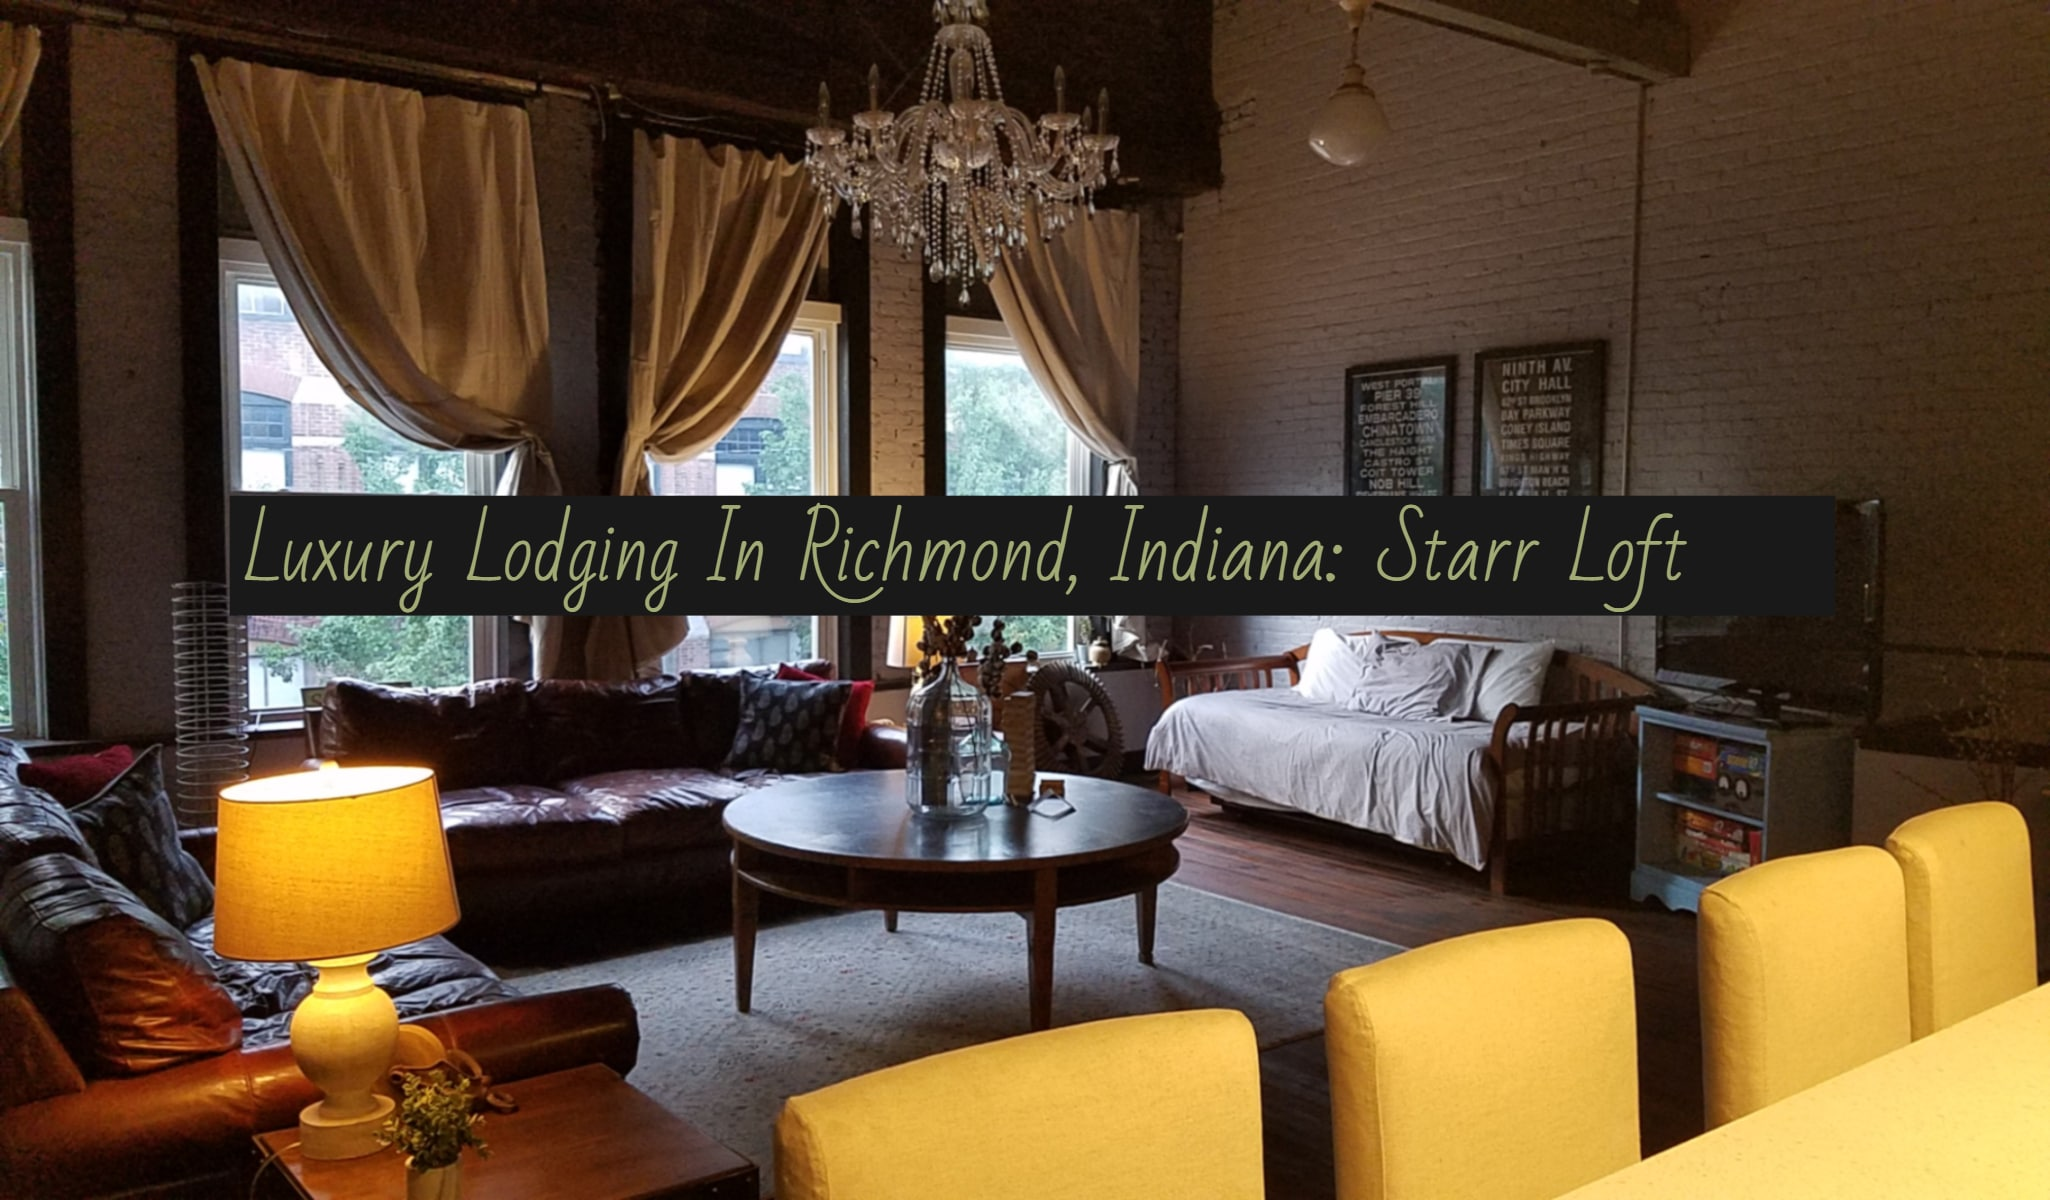 Downtown Richmond, Indiana Offers Luxury Lodging At Starr Loft